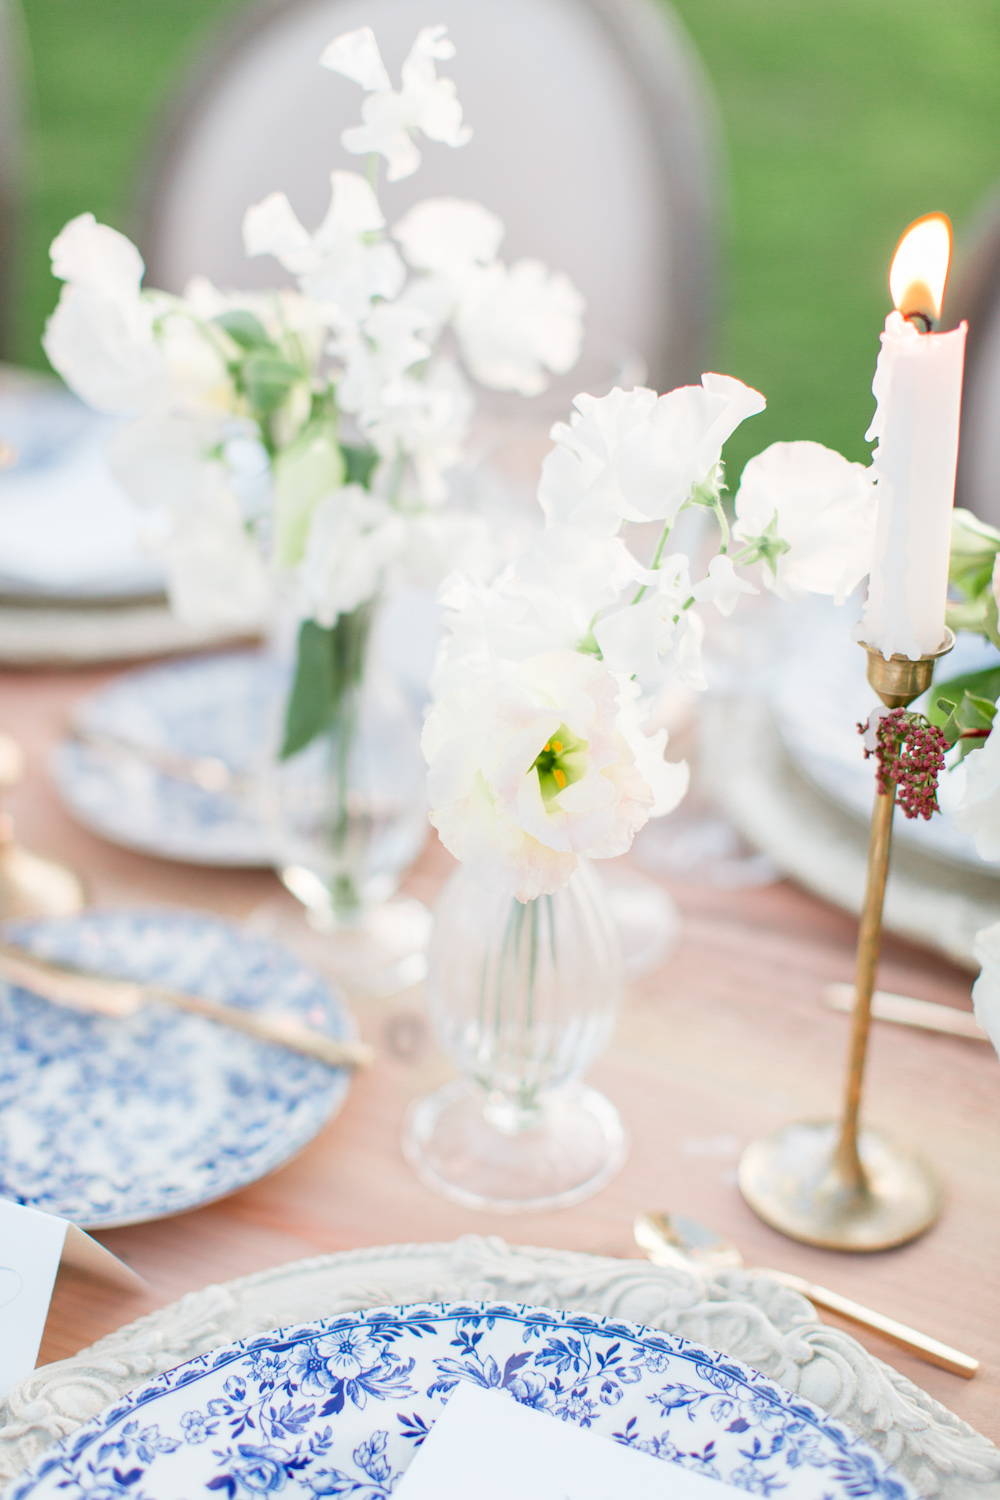 White sweet pea and blue chinoiserie place settings by Compass Floral | Rancho Valencia, Rancho Santa Fe.